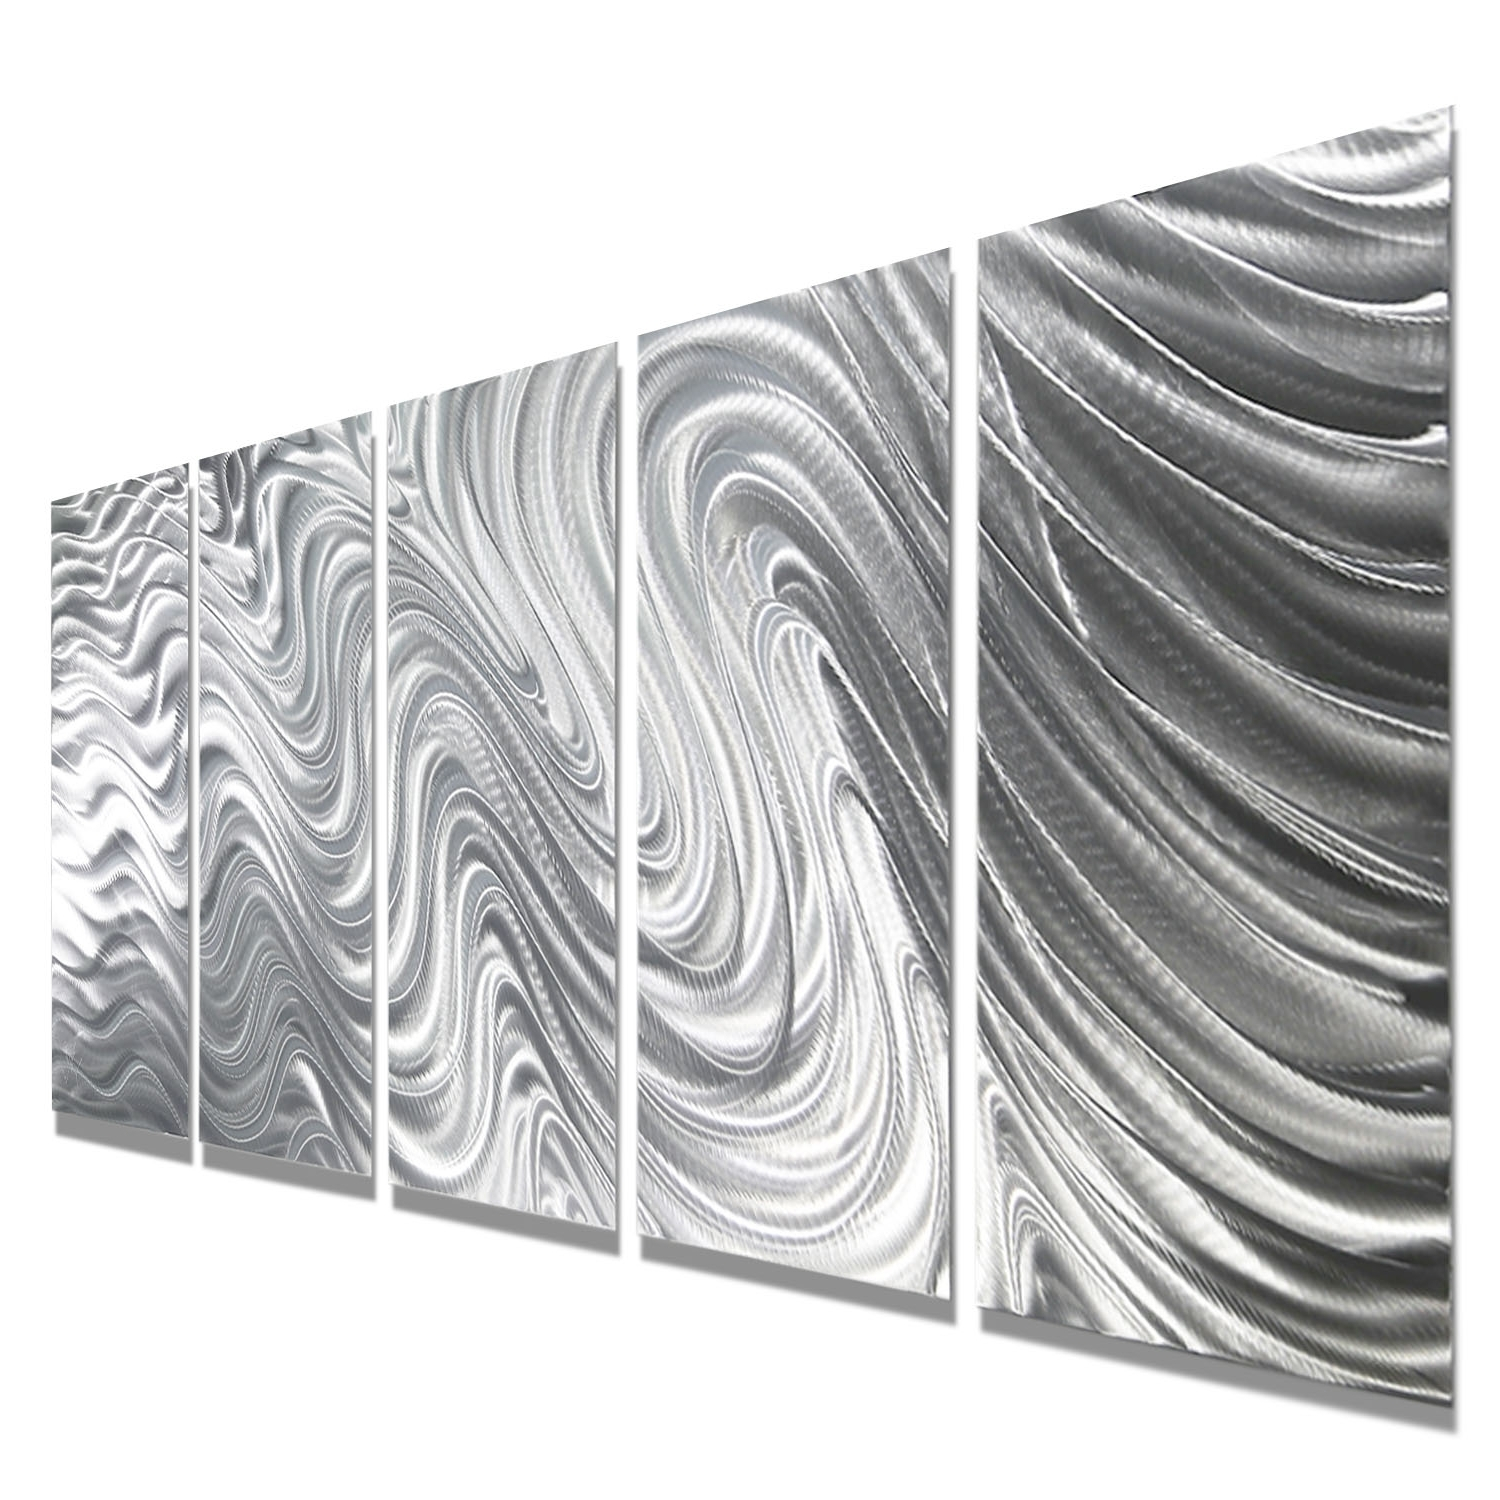 Silver Metal Wall Art Within 2017 Mirage – Silver Metal Wall Art – 5 Panel Wall Décorjon Allen (View 12 of 20)